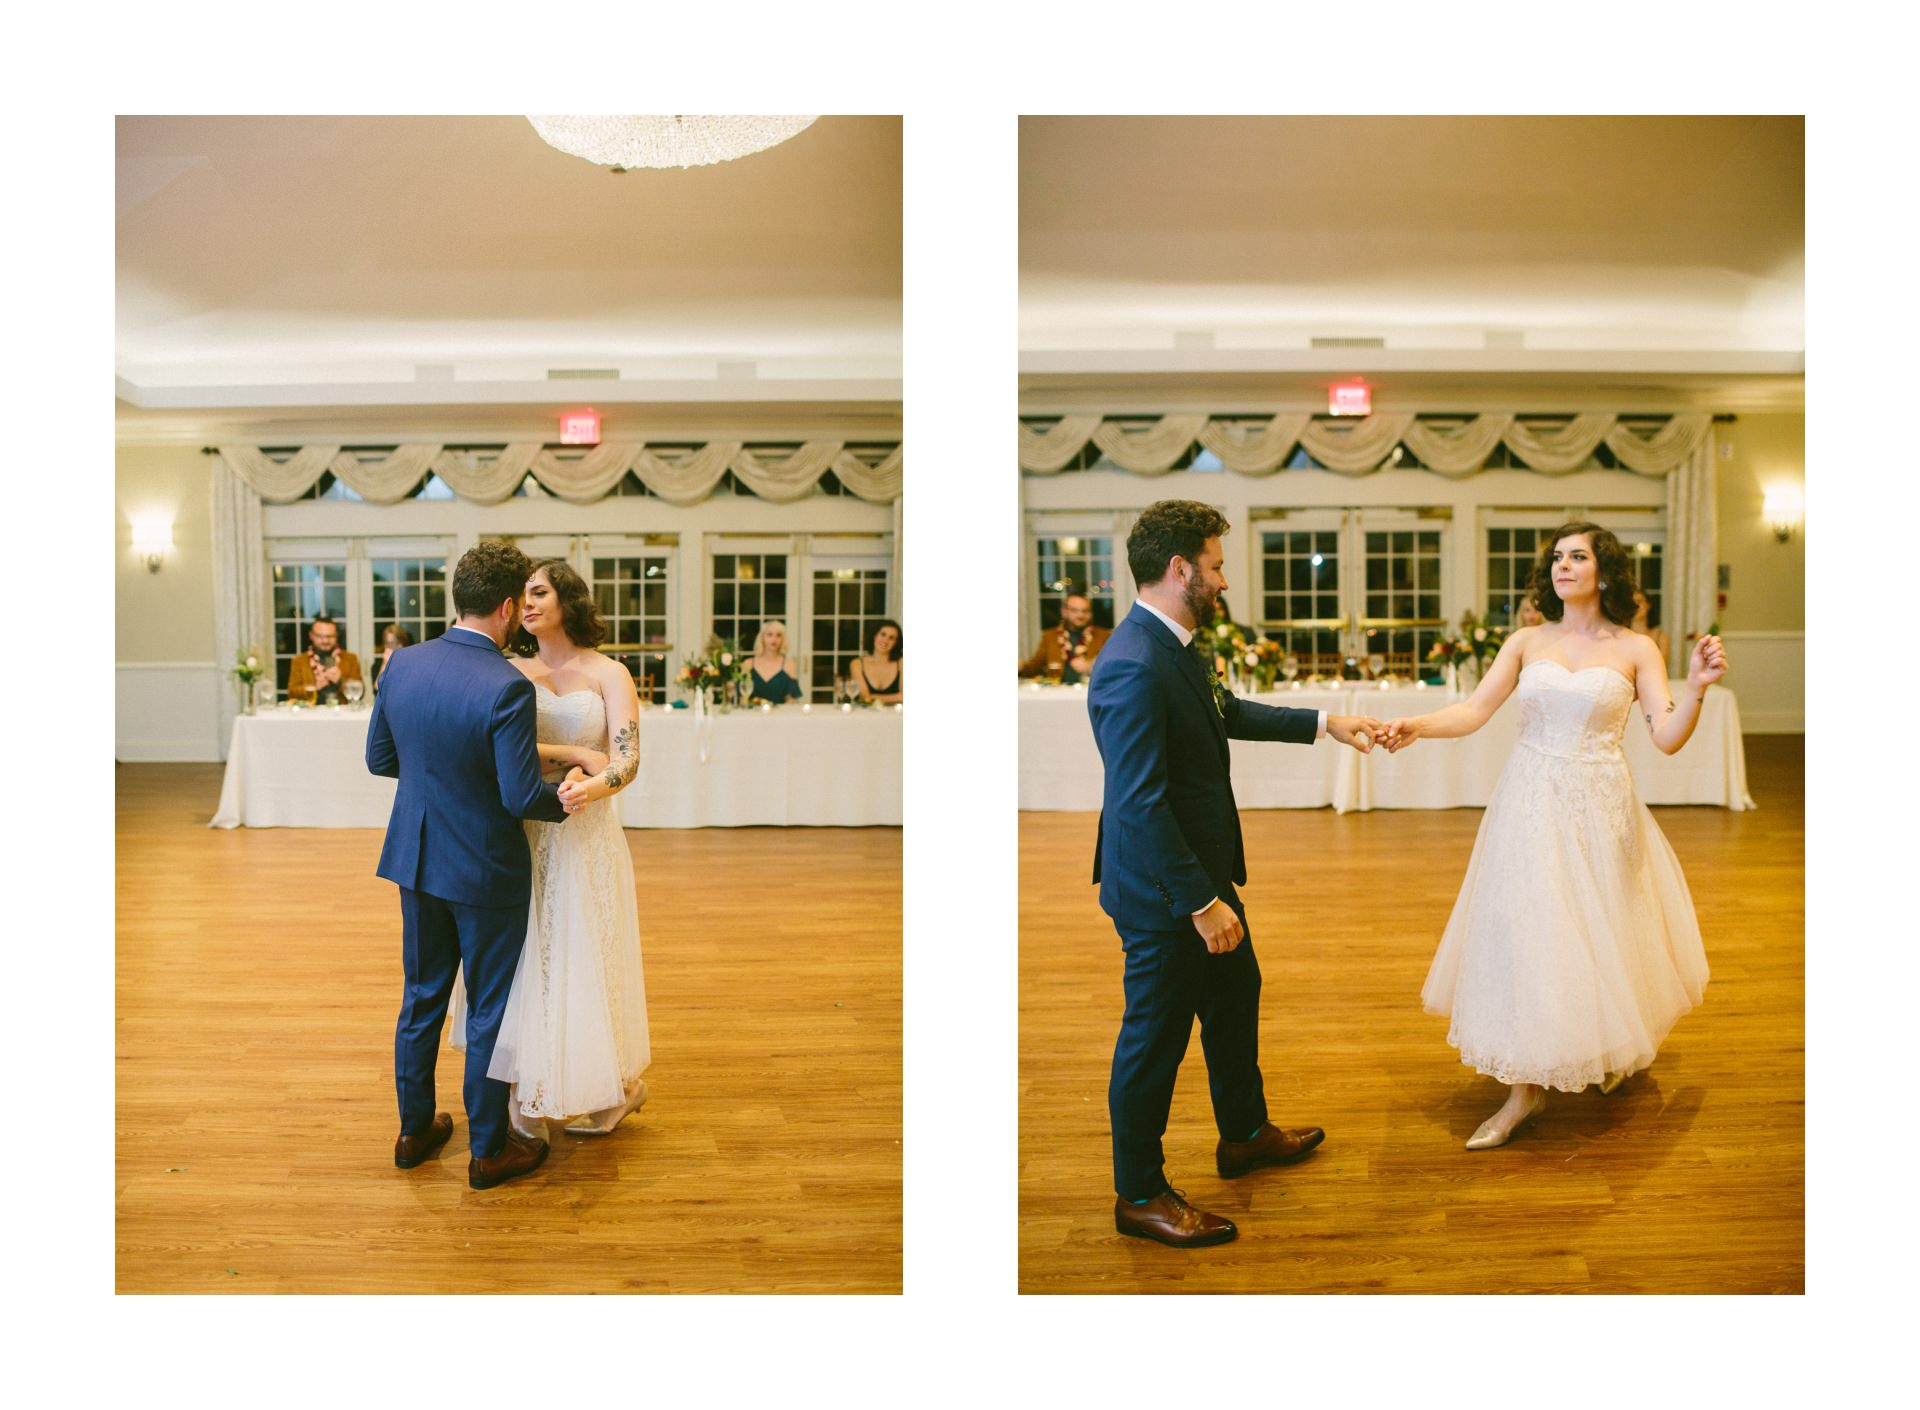 Wedding at the Glidden House in Cleveland 2 26.jpg